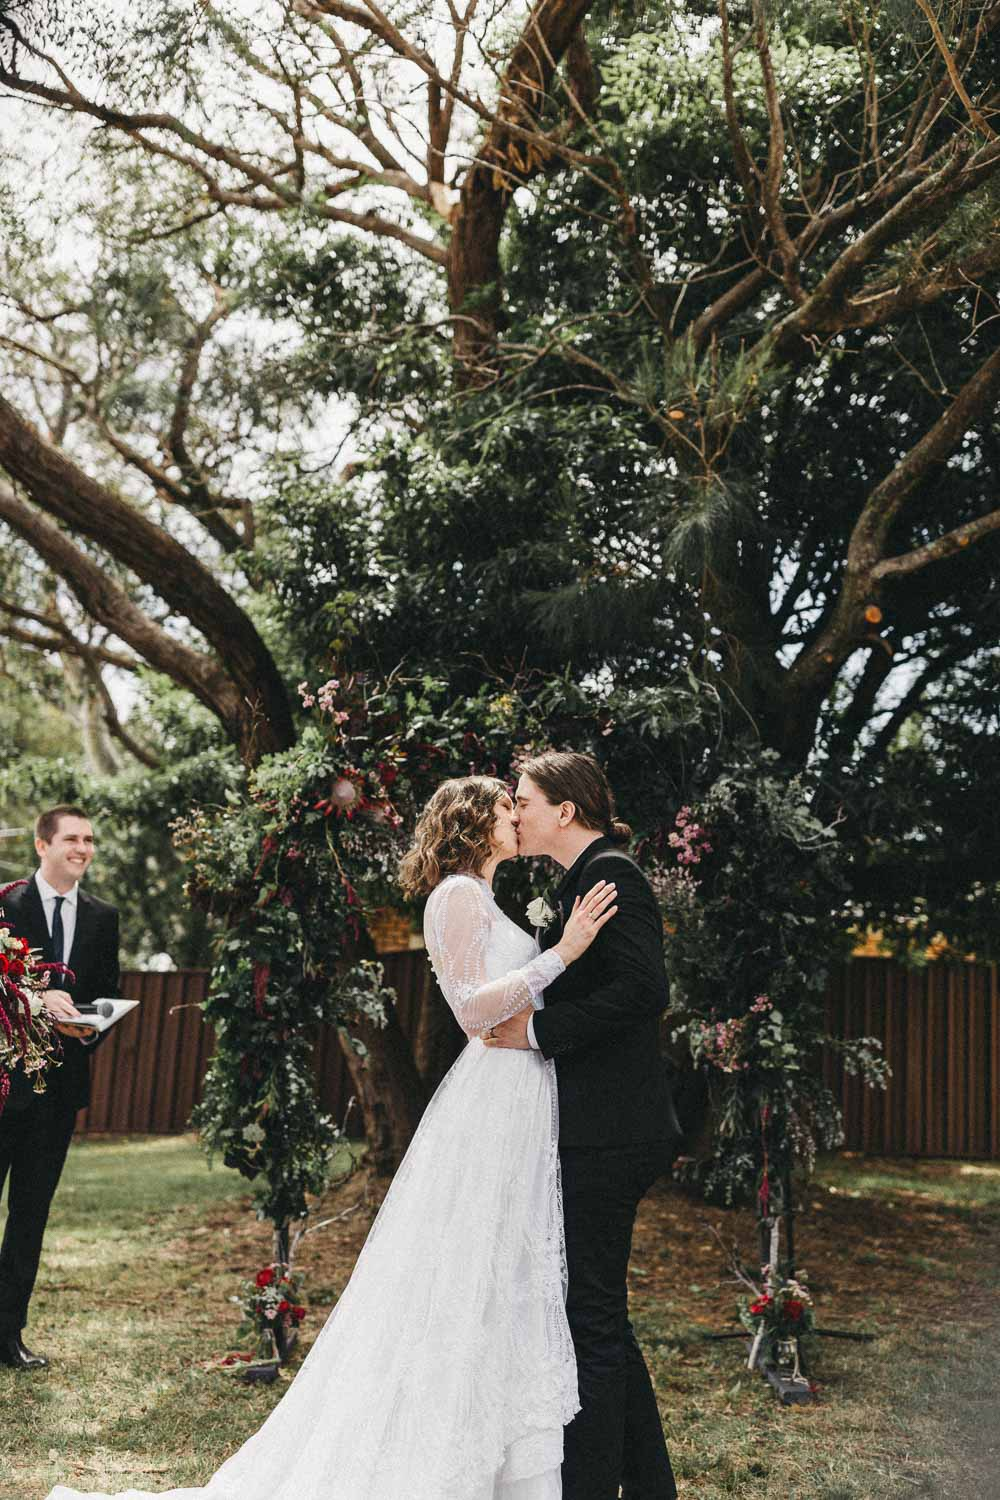 Sydney Wedding Photography | Wazza Studio 34.jpg